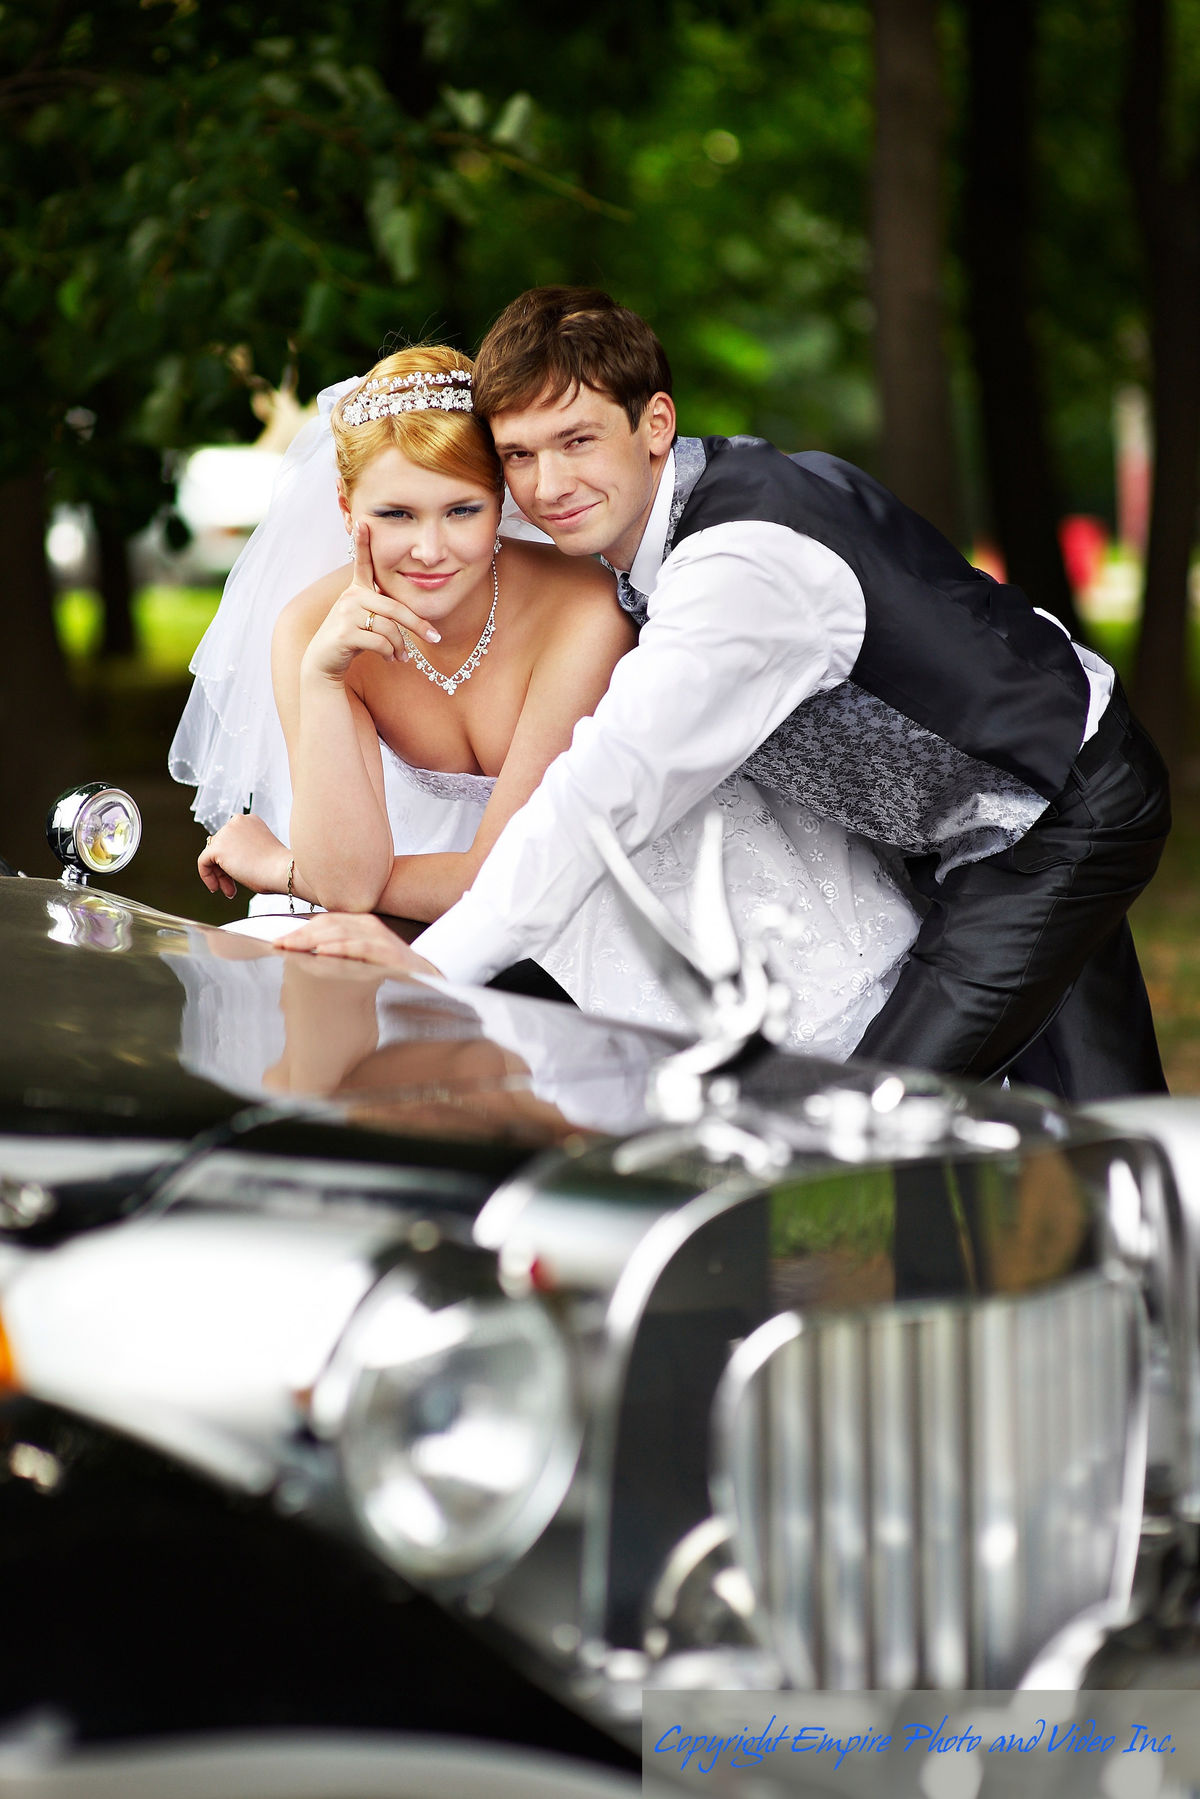 empire photo and video wedding photo car